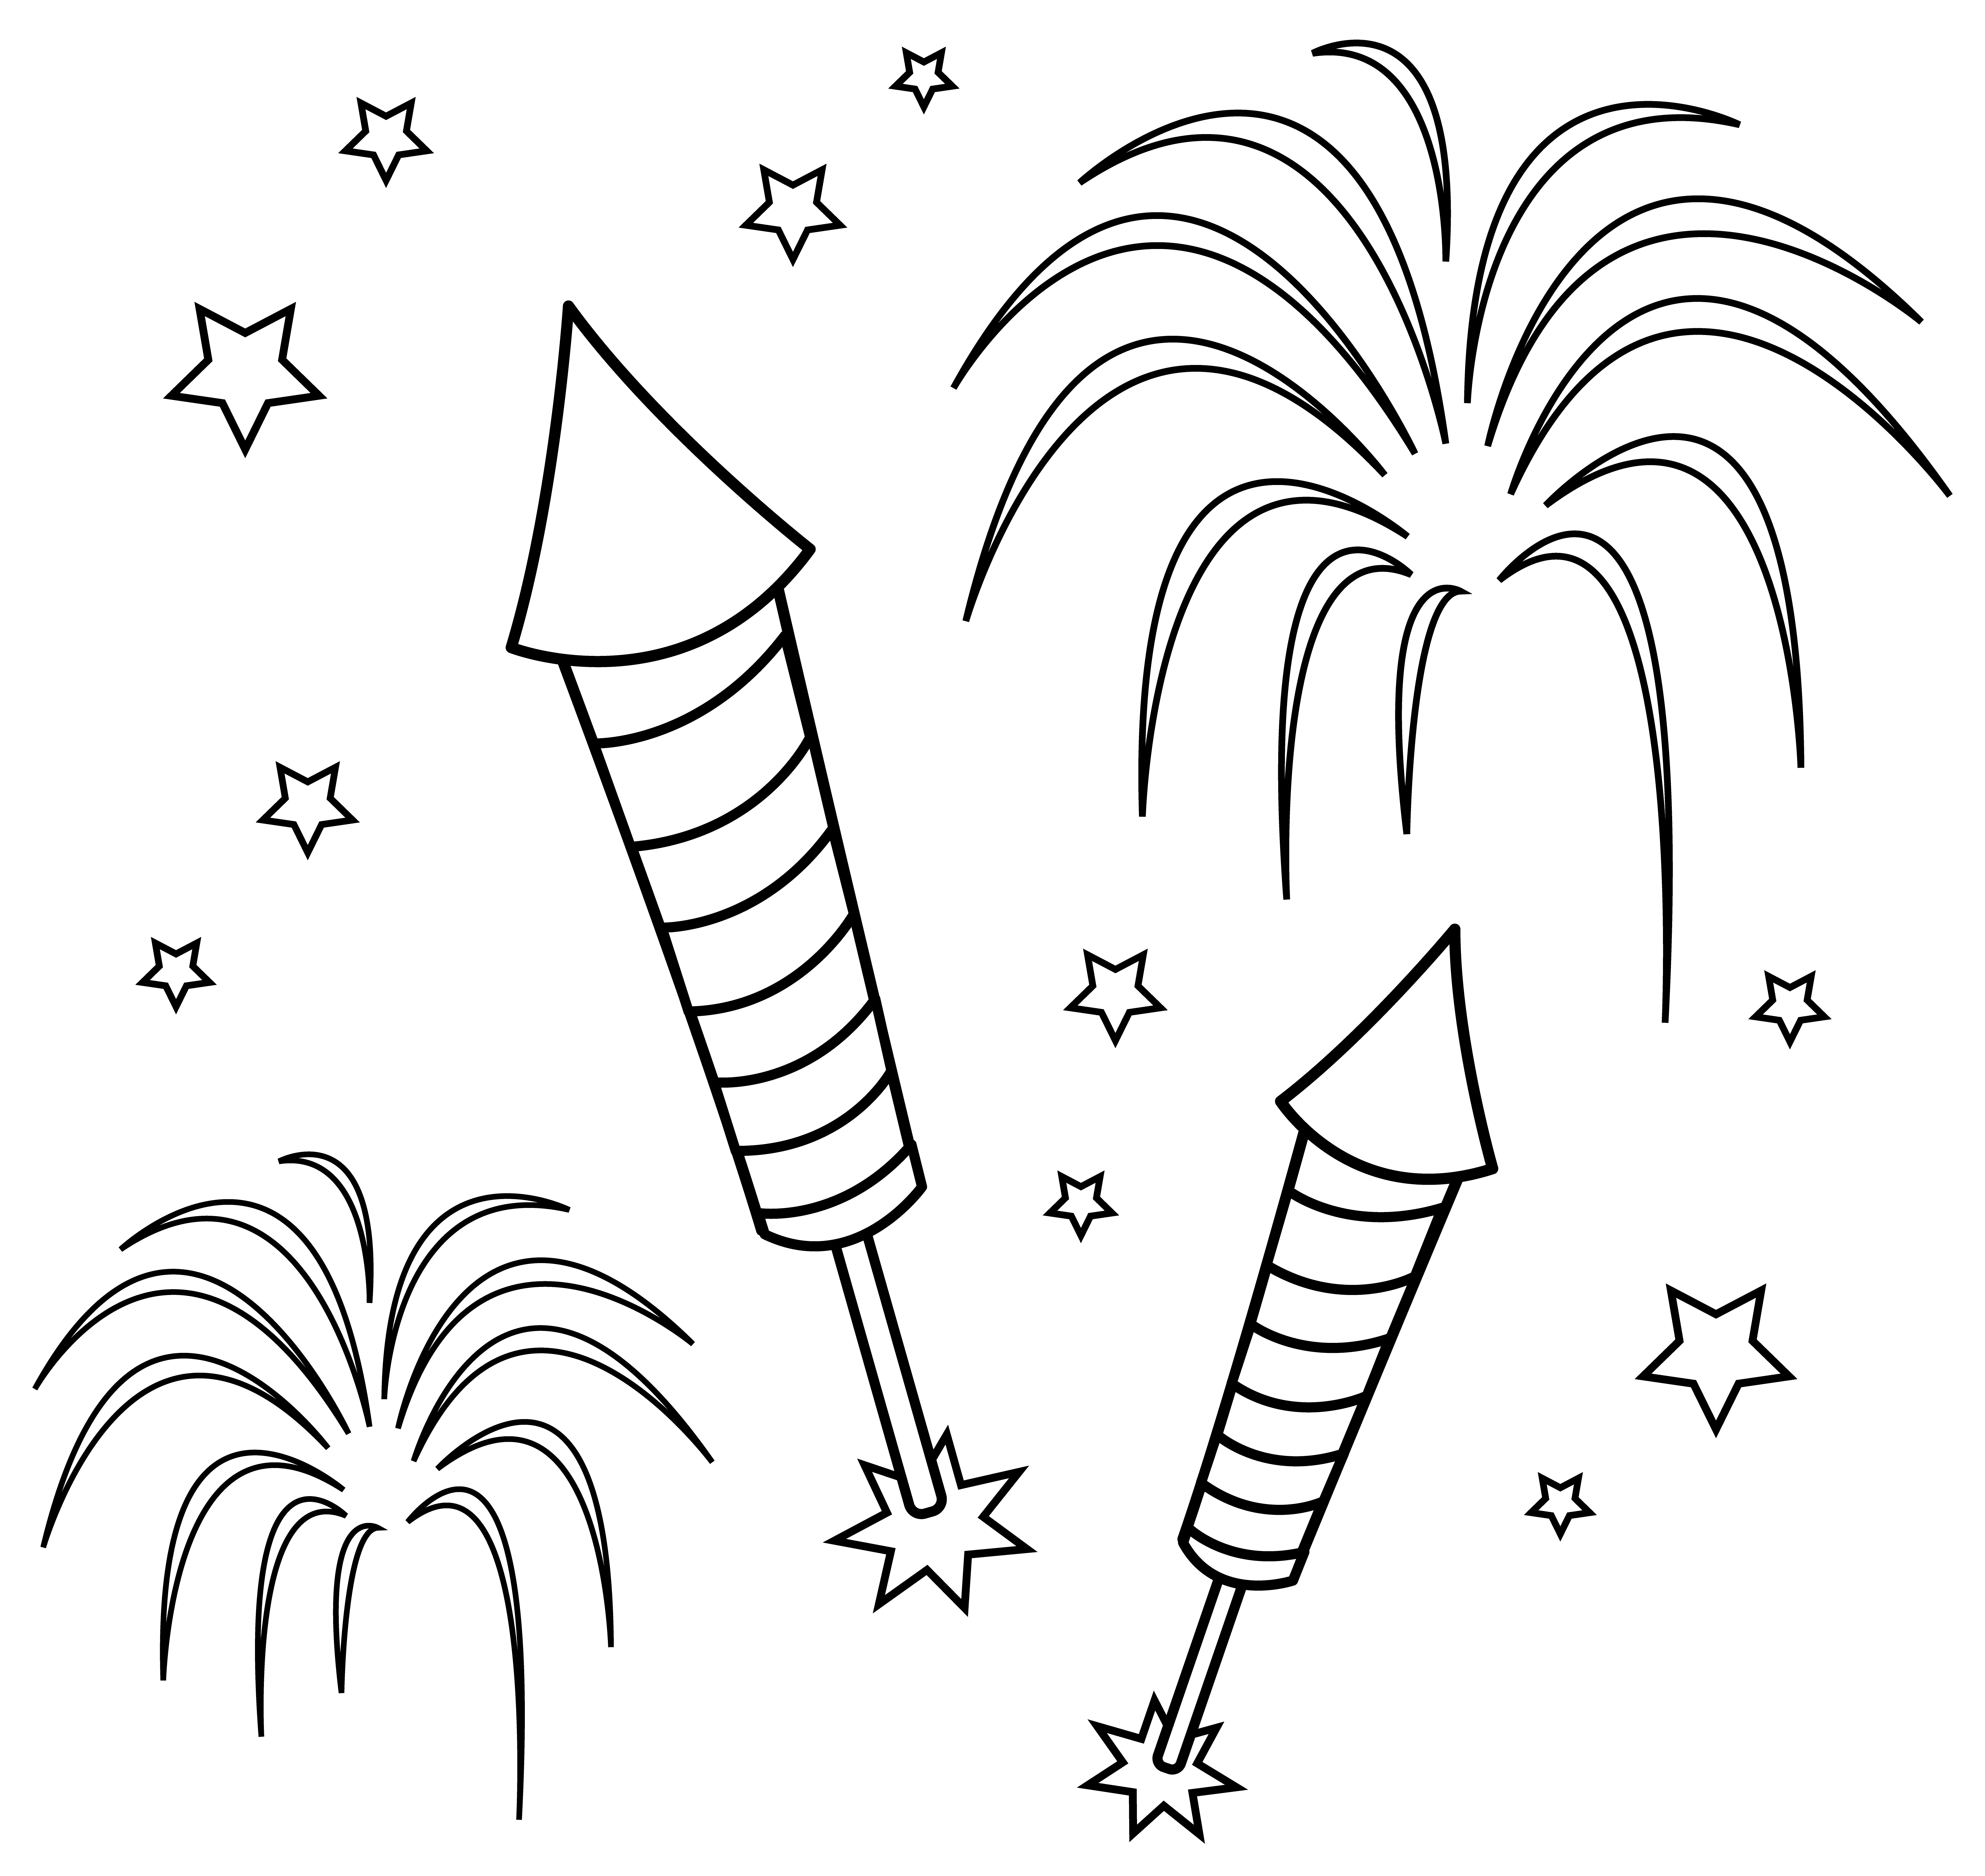 coloring page of fireworks firework coloring pages to download and print for free of coloring page fireworks